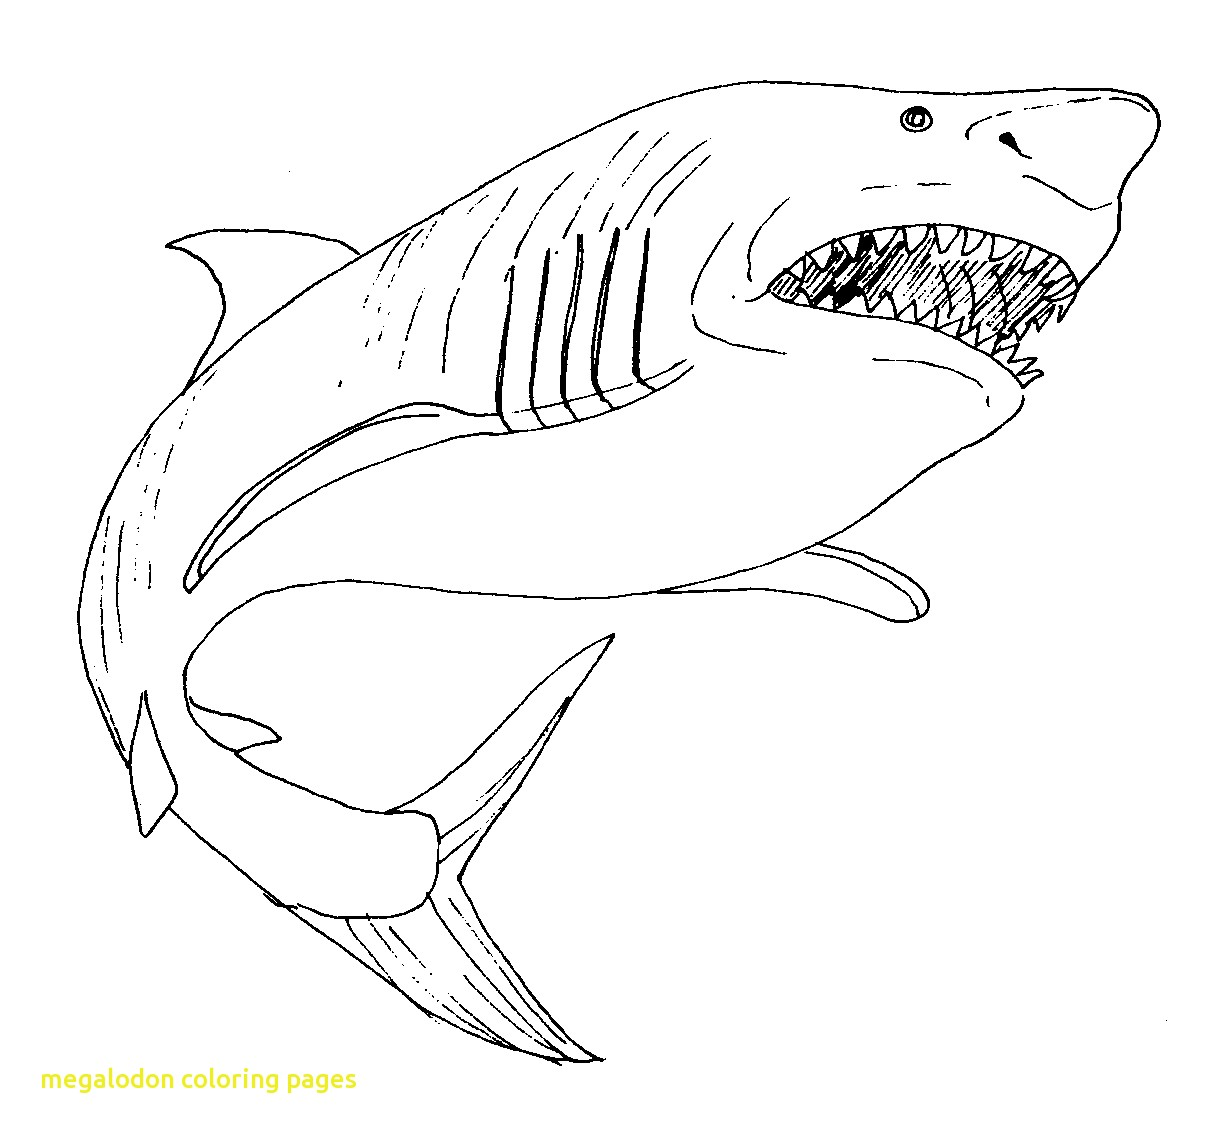 Sharks clipart megalodon. Coloring pages with shark